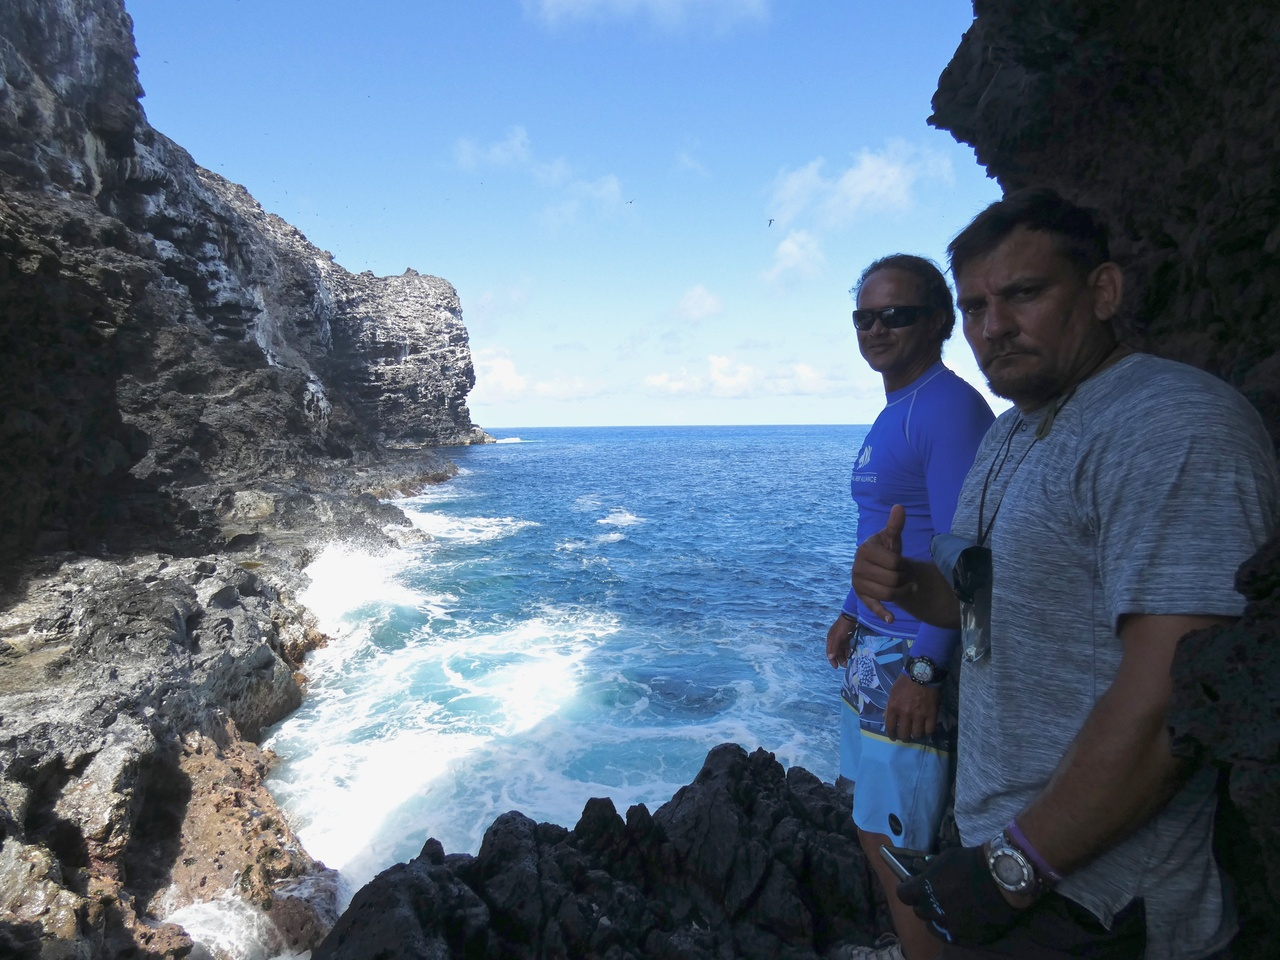 Rocky island and two men in front of the ocean.